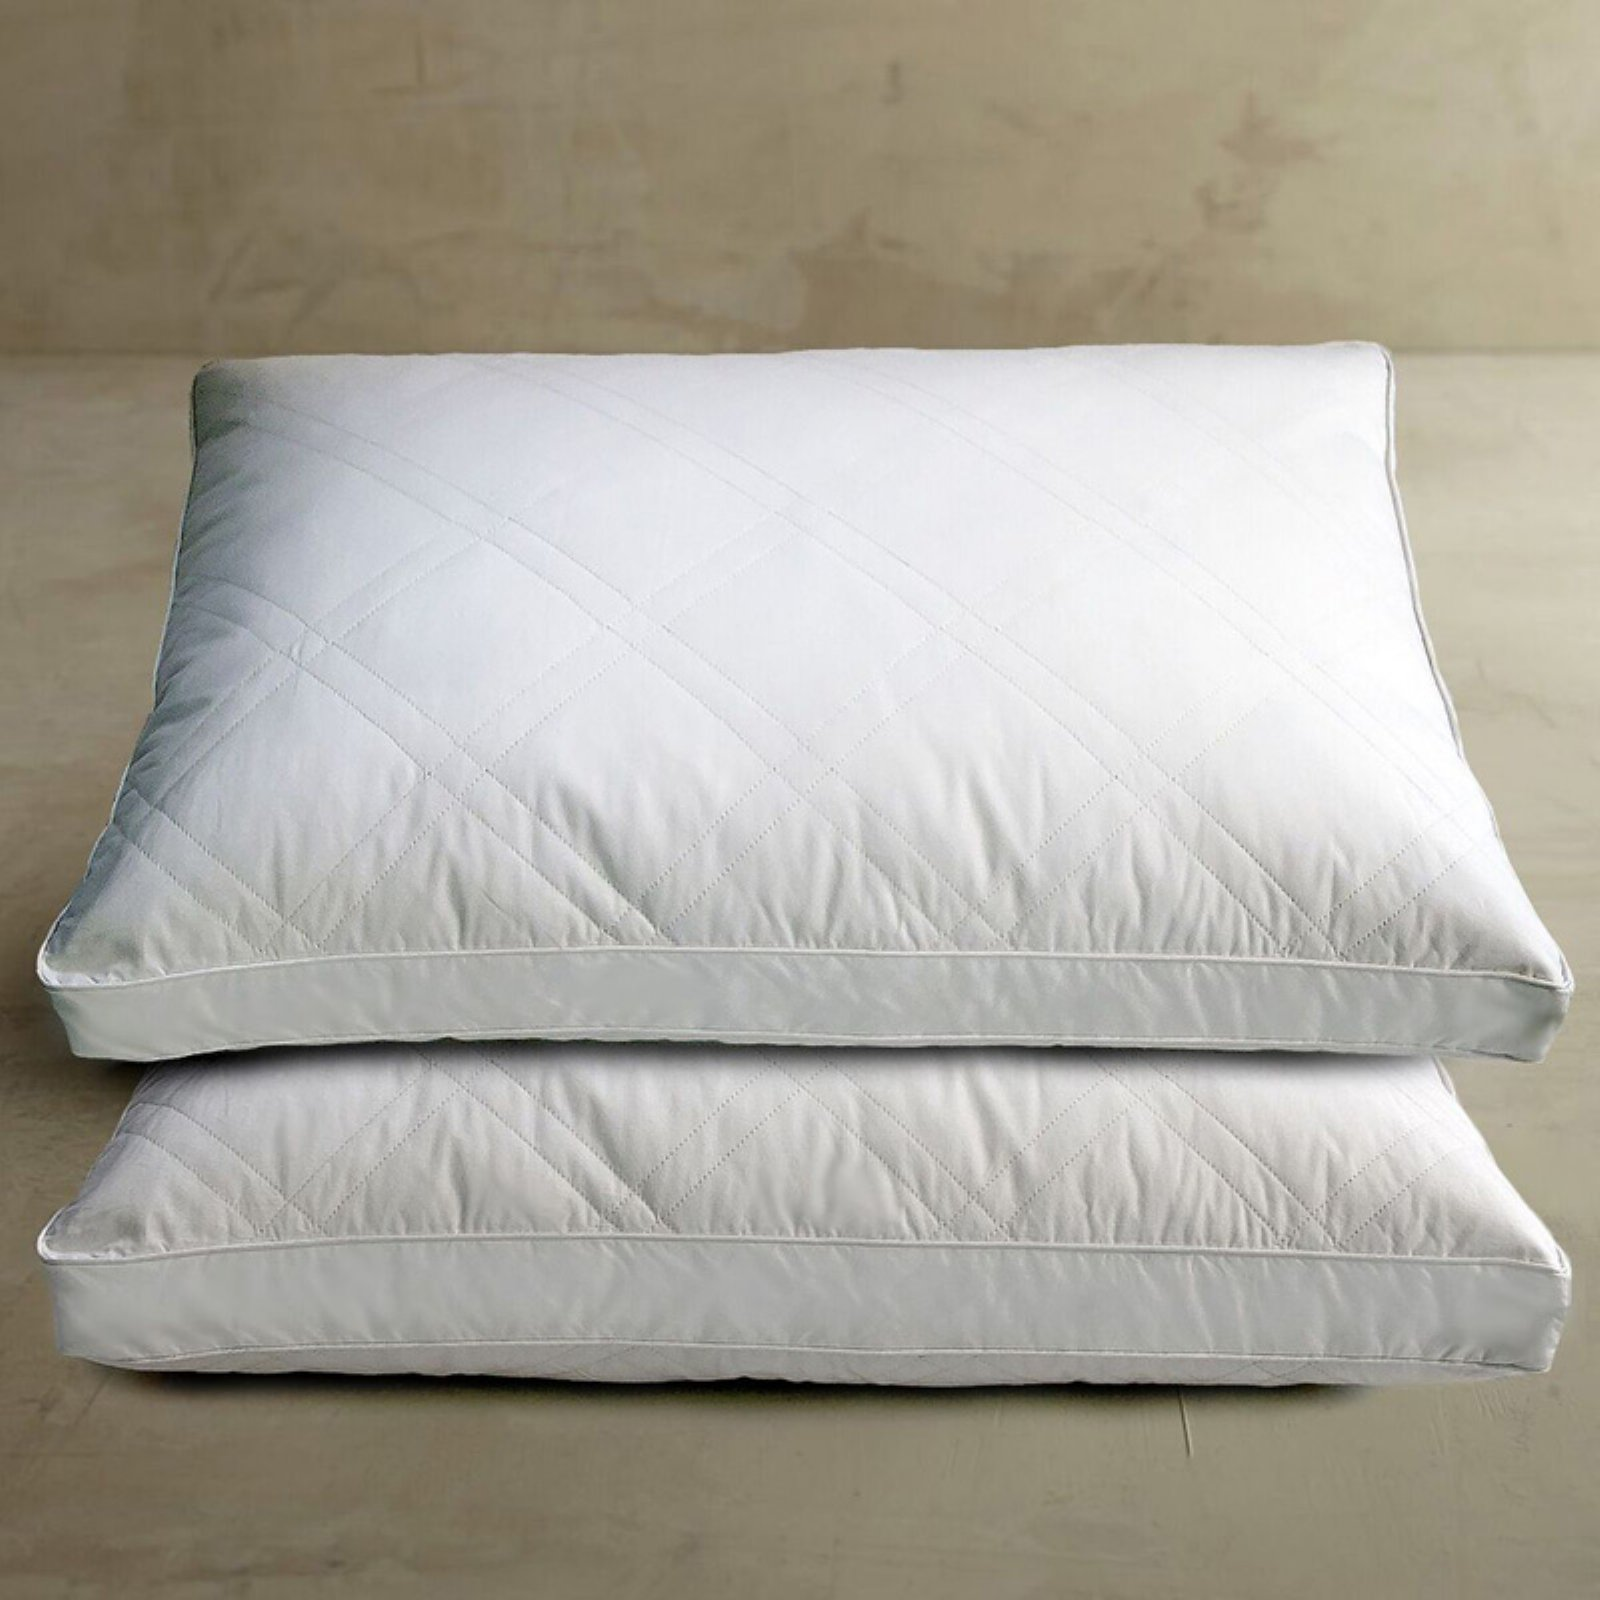 Blue Ridge Home Fashions Down Feather Bed Pillow - Set of 2